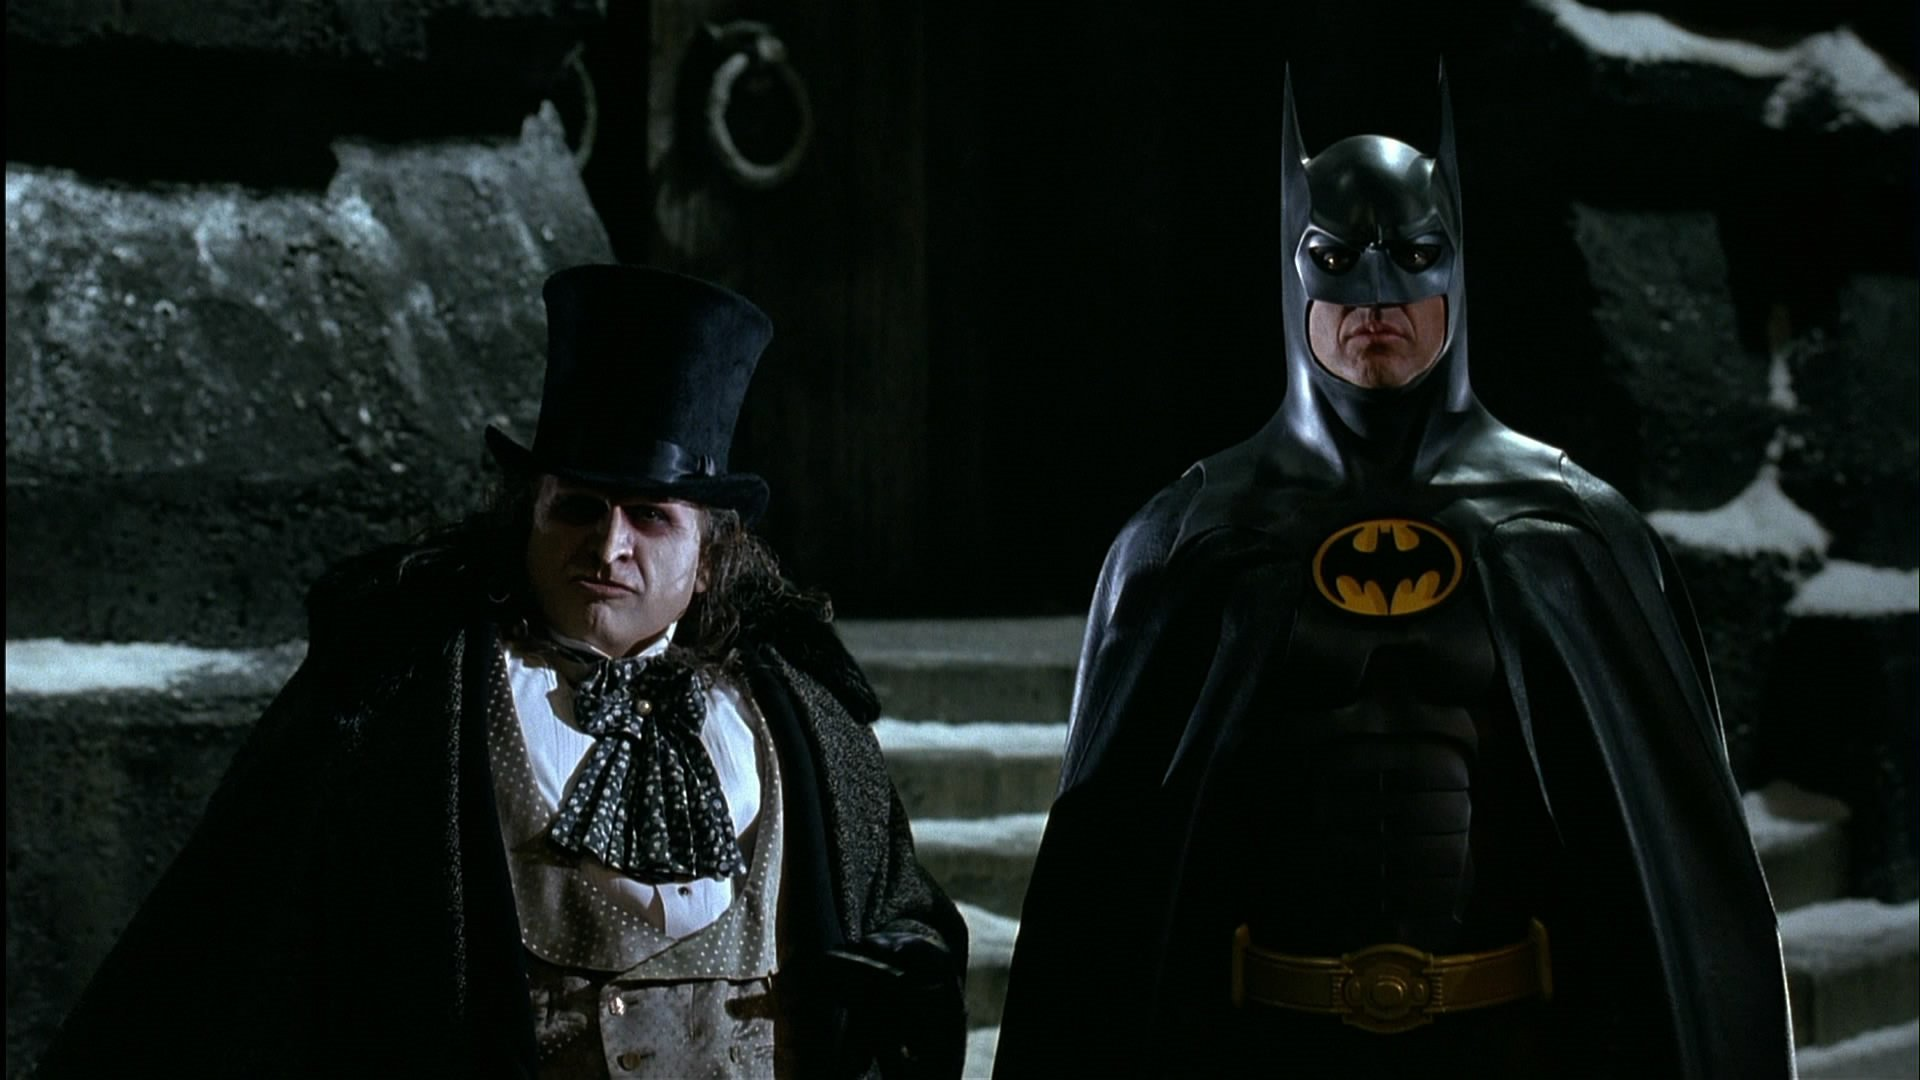 4. 'Batman Returns' (1992)